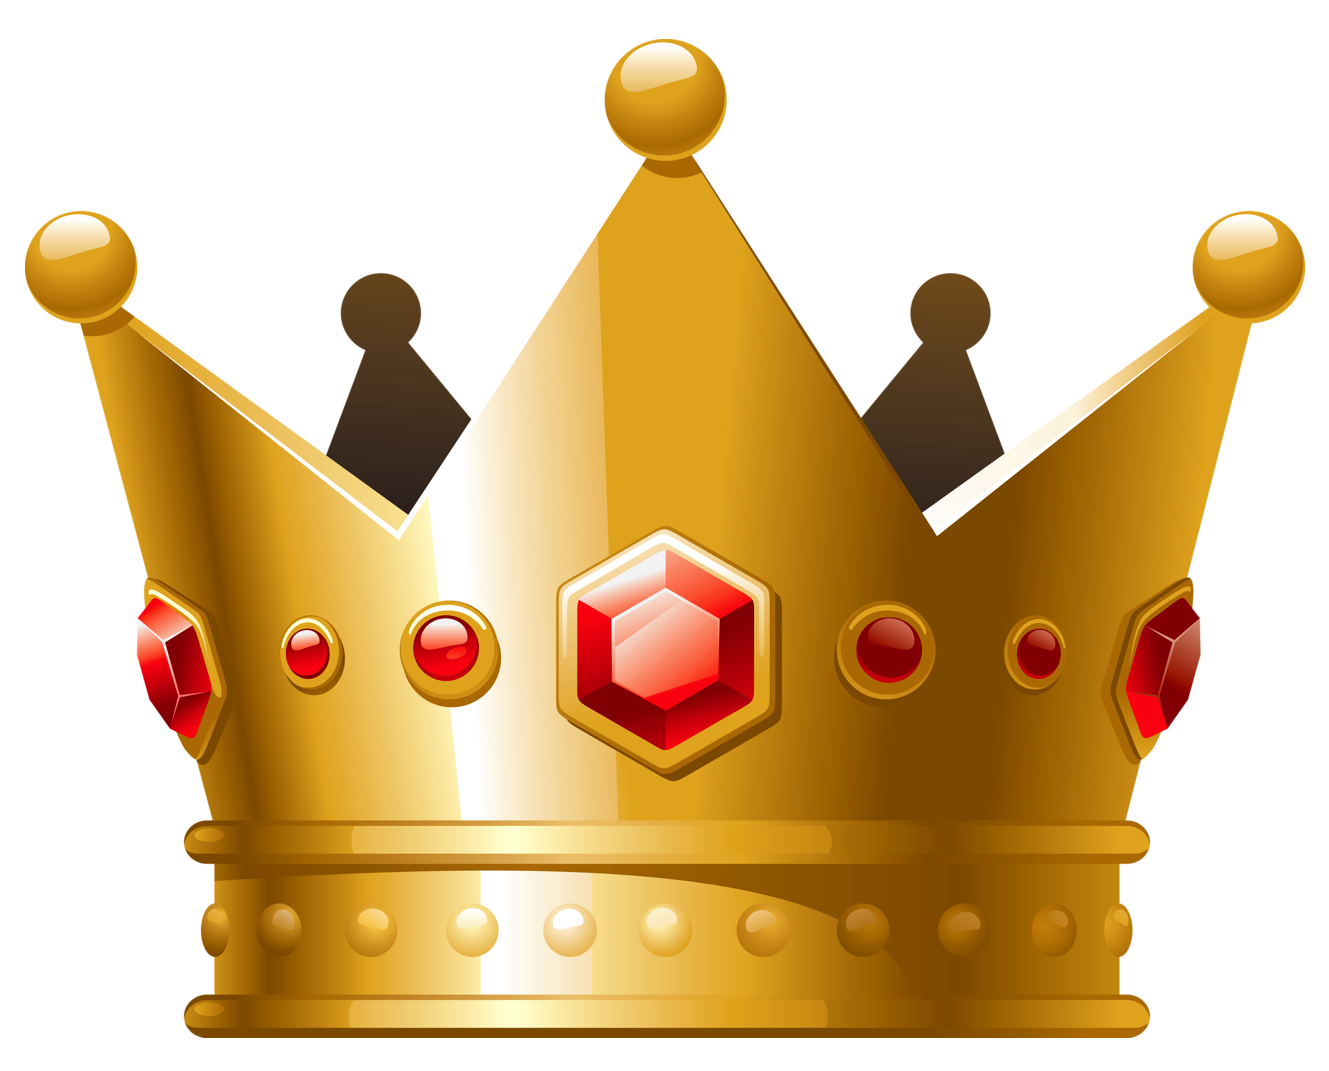 Hand drawn crown clipart clipart library library Crown transparent crown image with transparent background 2 | Crowns ... clipart library library